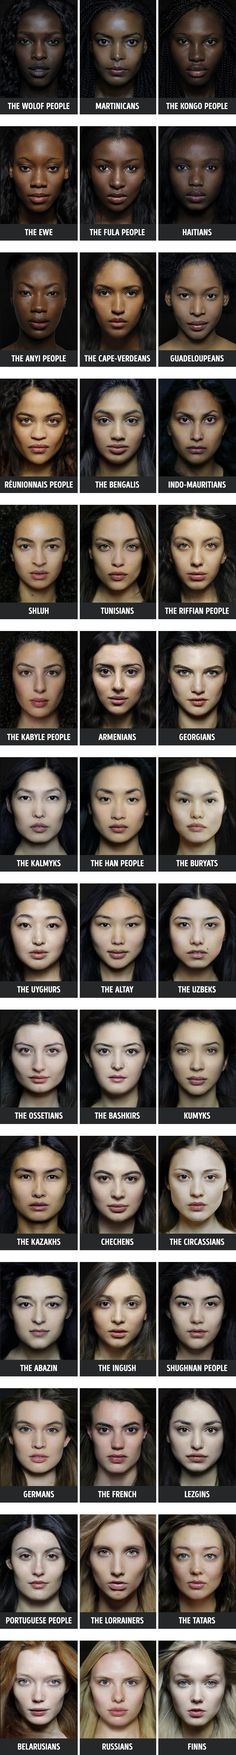 Facial color palettes around the world                                                                                                                                                                                 More